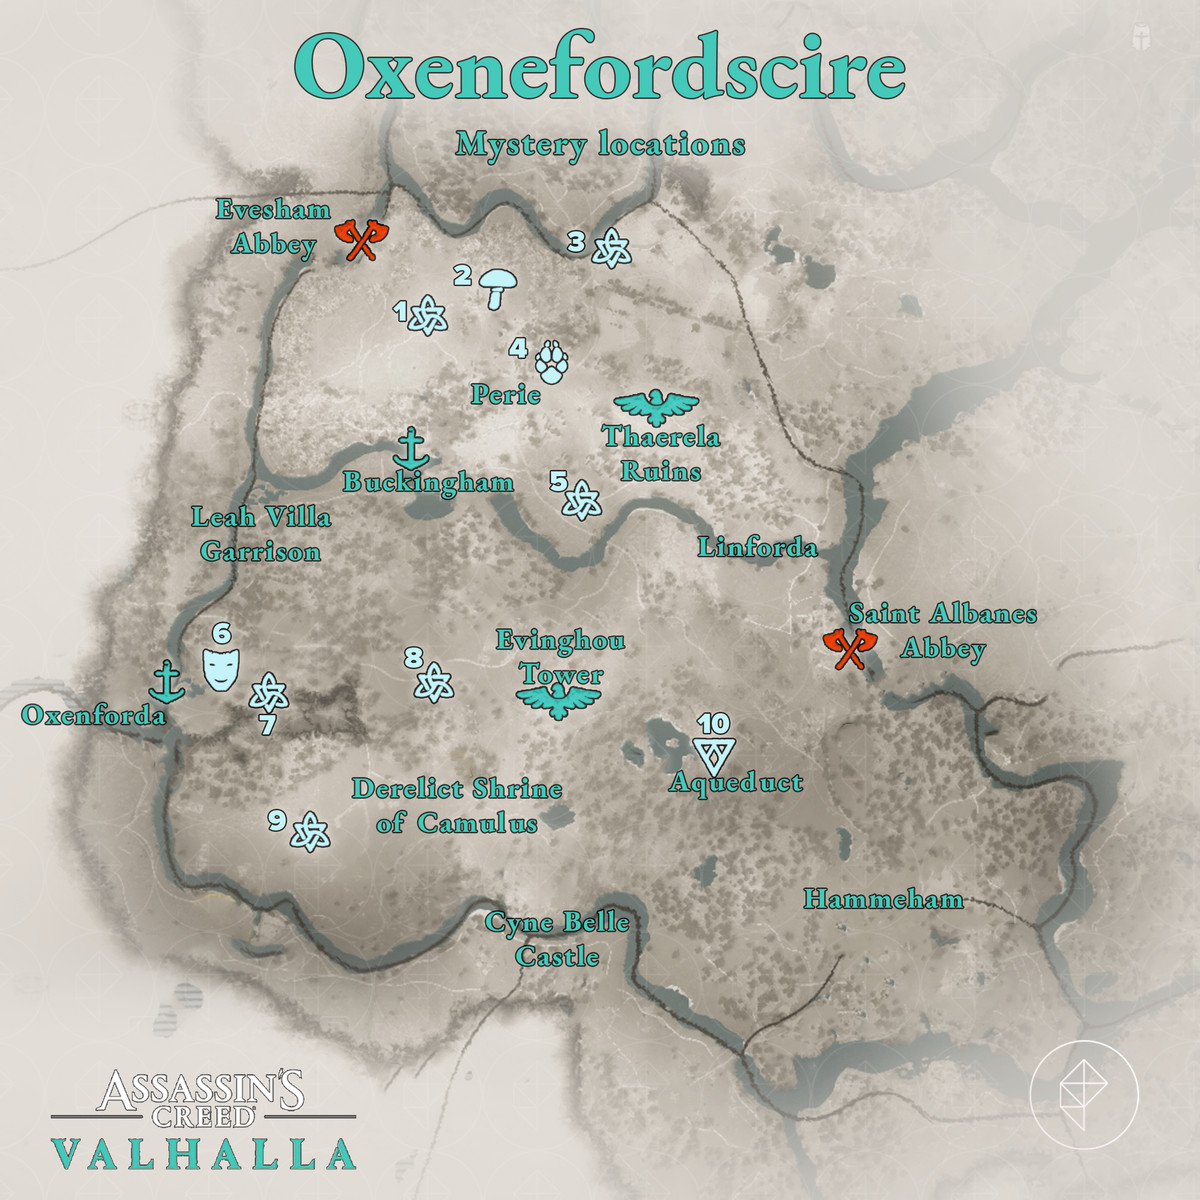 Oxenefordscire Mysteries locations map